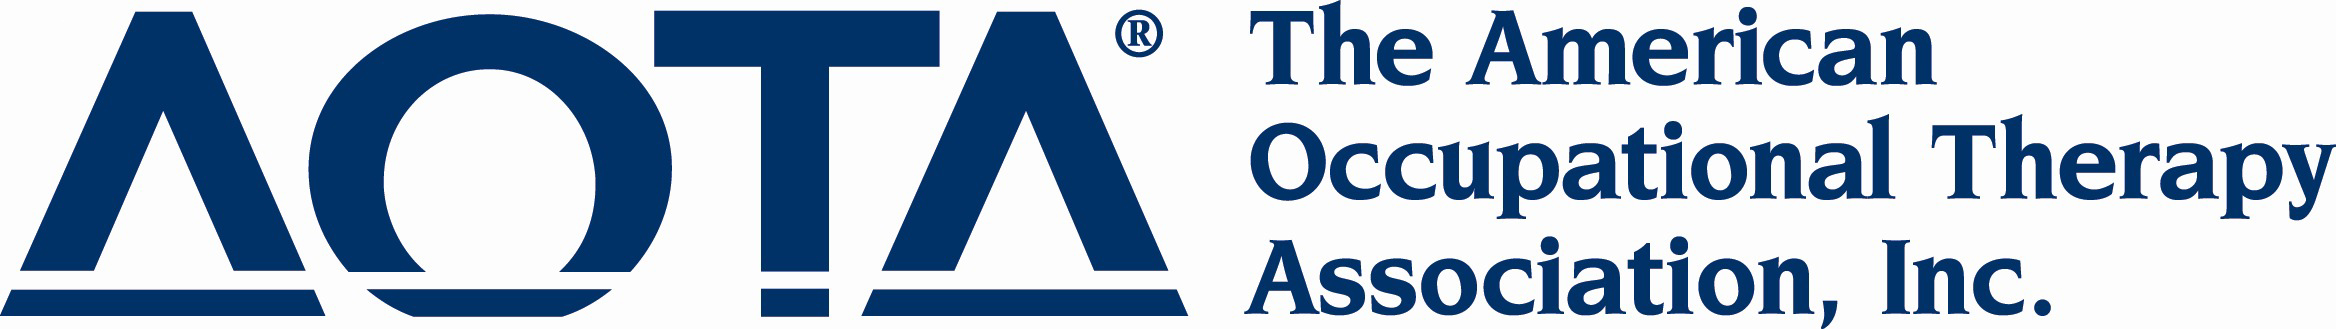 AOTA The American Occupational Therapy Association, Inc.